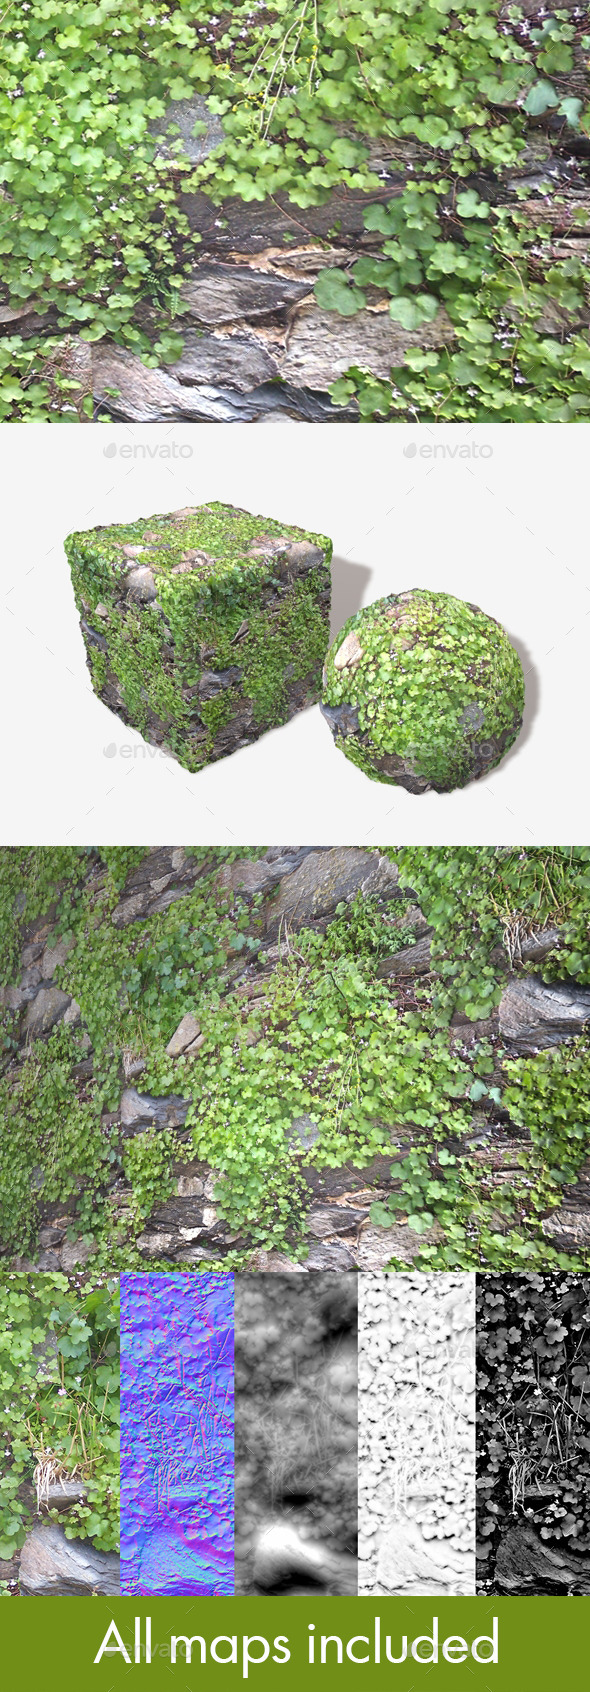 3DOcean Rock Wall Plants Seamless Texture 12124183